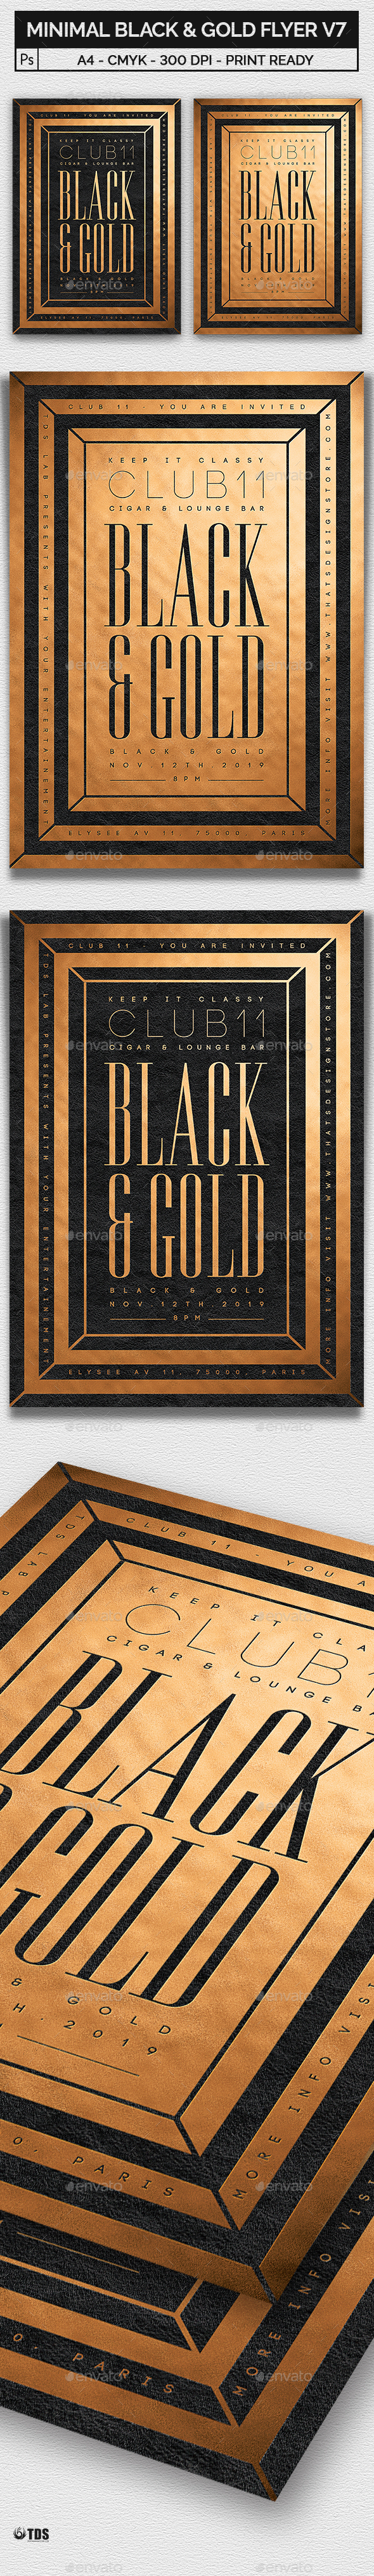 Minimal Black and Gold Flyer Template V7 - Clubs & Parties Events